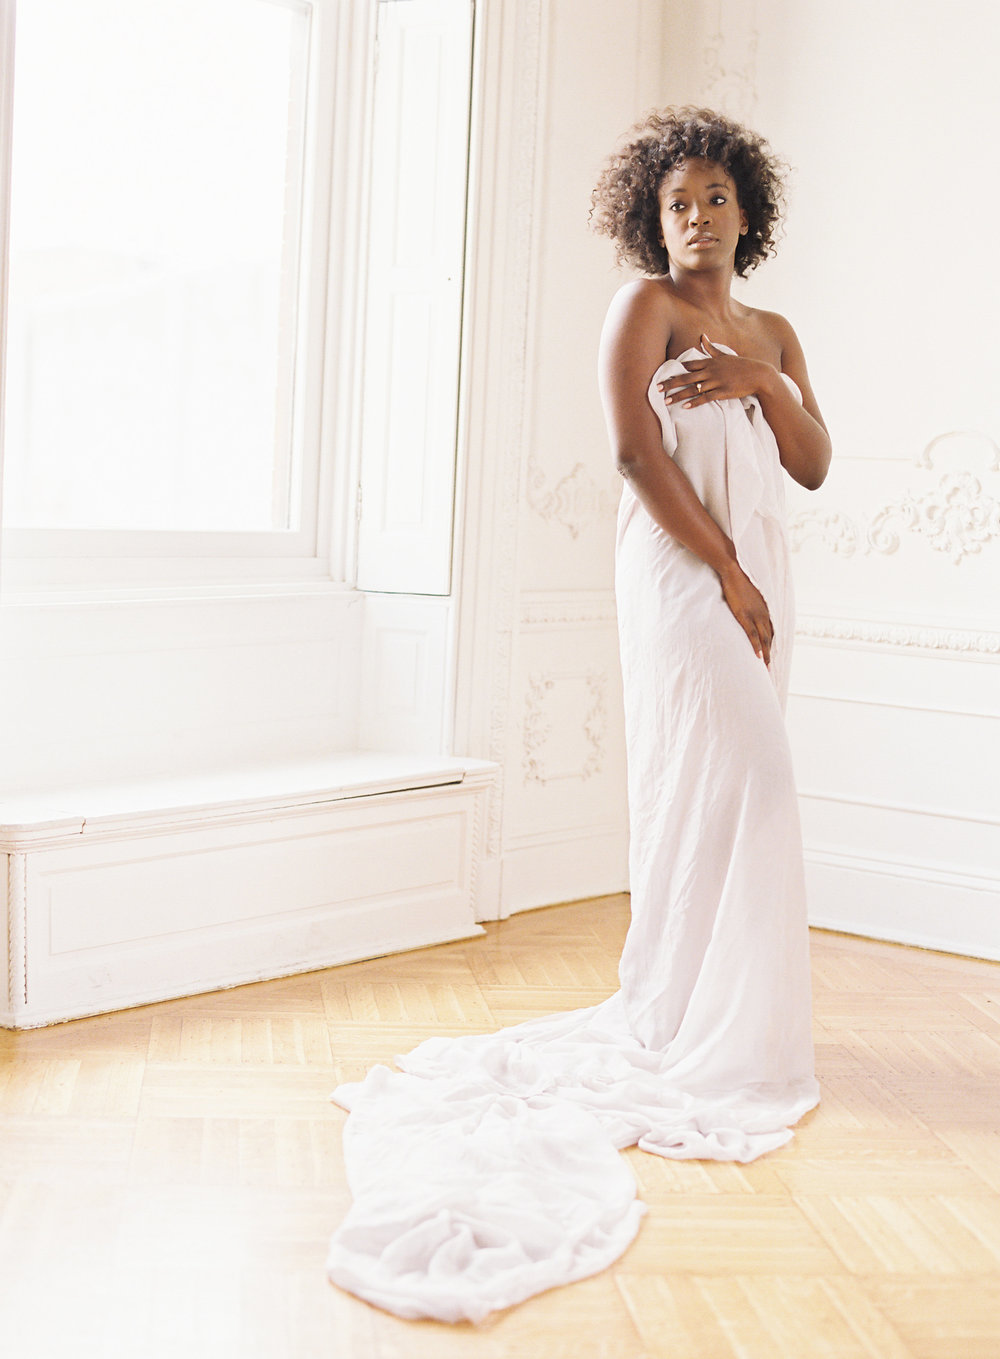 Minimal boudoir photoshoot at the Elephant Restaurant Baltimore with Michael and Carina Photography and fine art luxury wedding planner and stylist East Made Event Company-0009.jpg